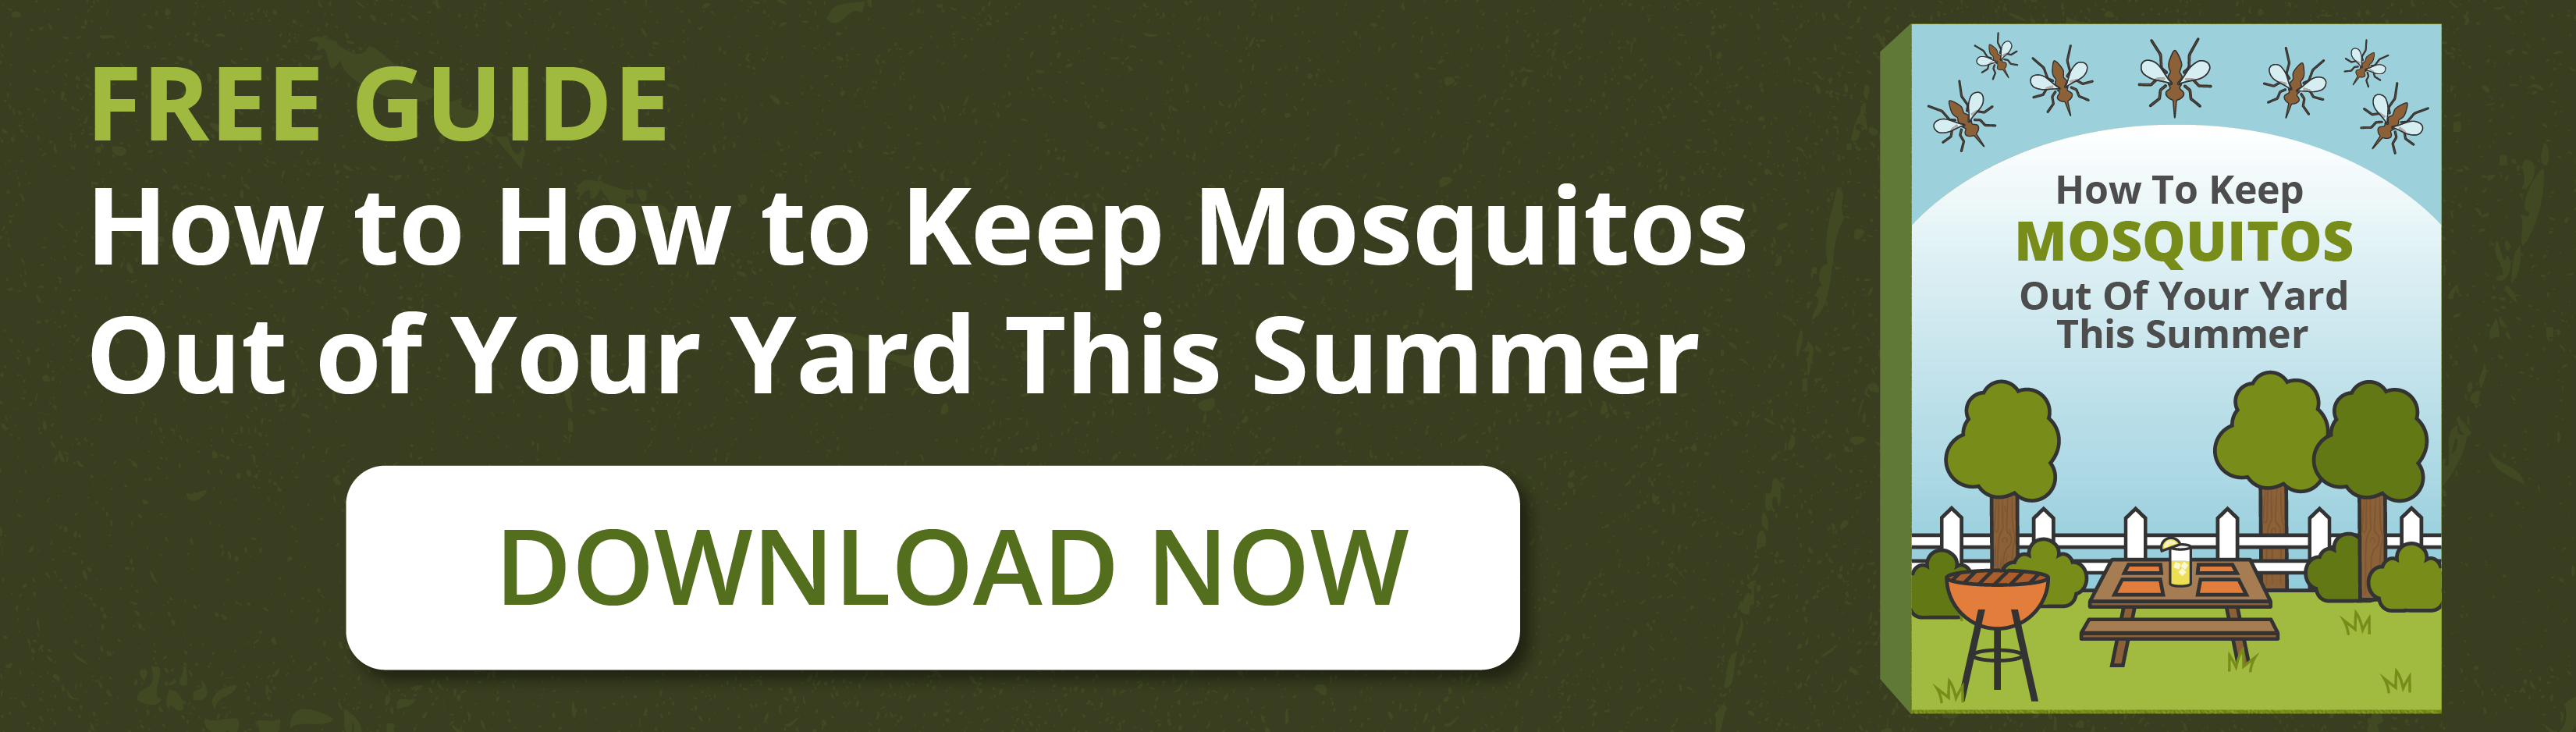 How to Keep Mosquitos Out of Your Yard This Summer